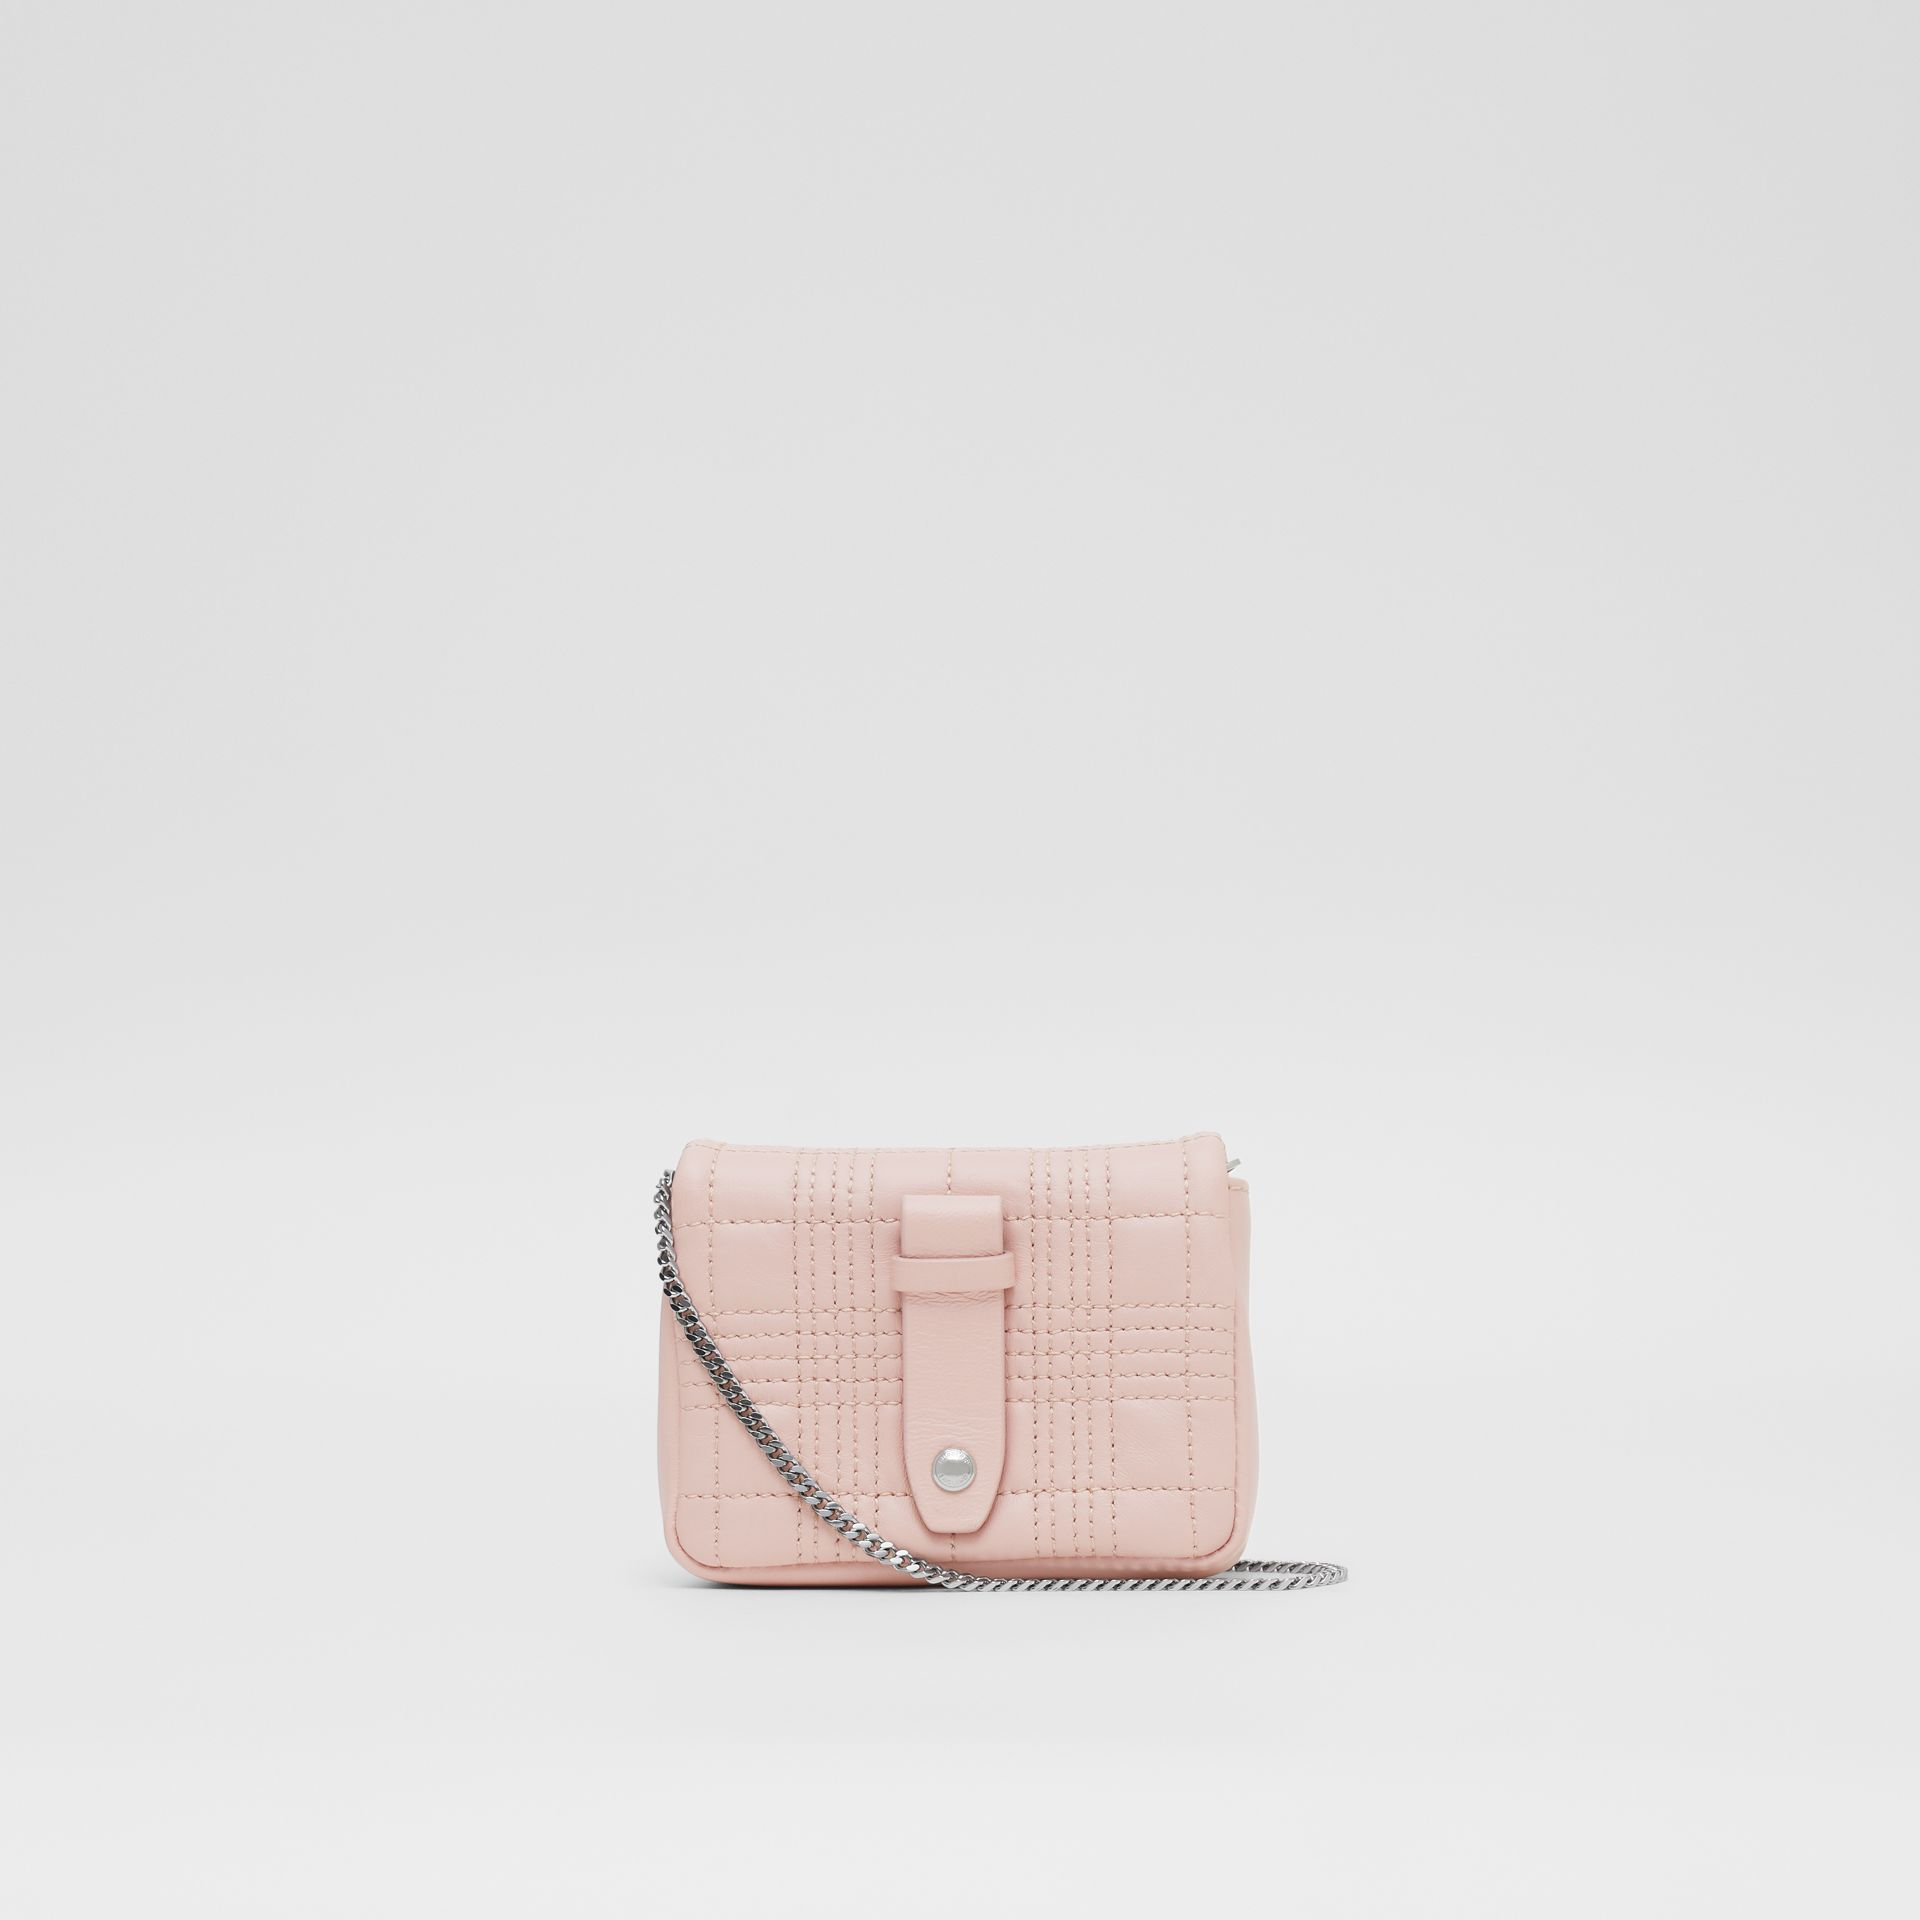 Micro Quilted Lambskin Lola Bag in Blush Pink - Women | Burberry United Kingdom - gallery image 7